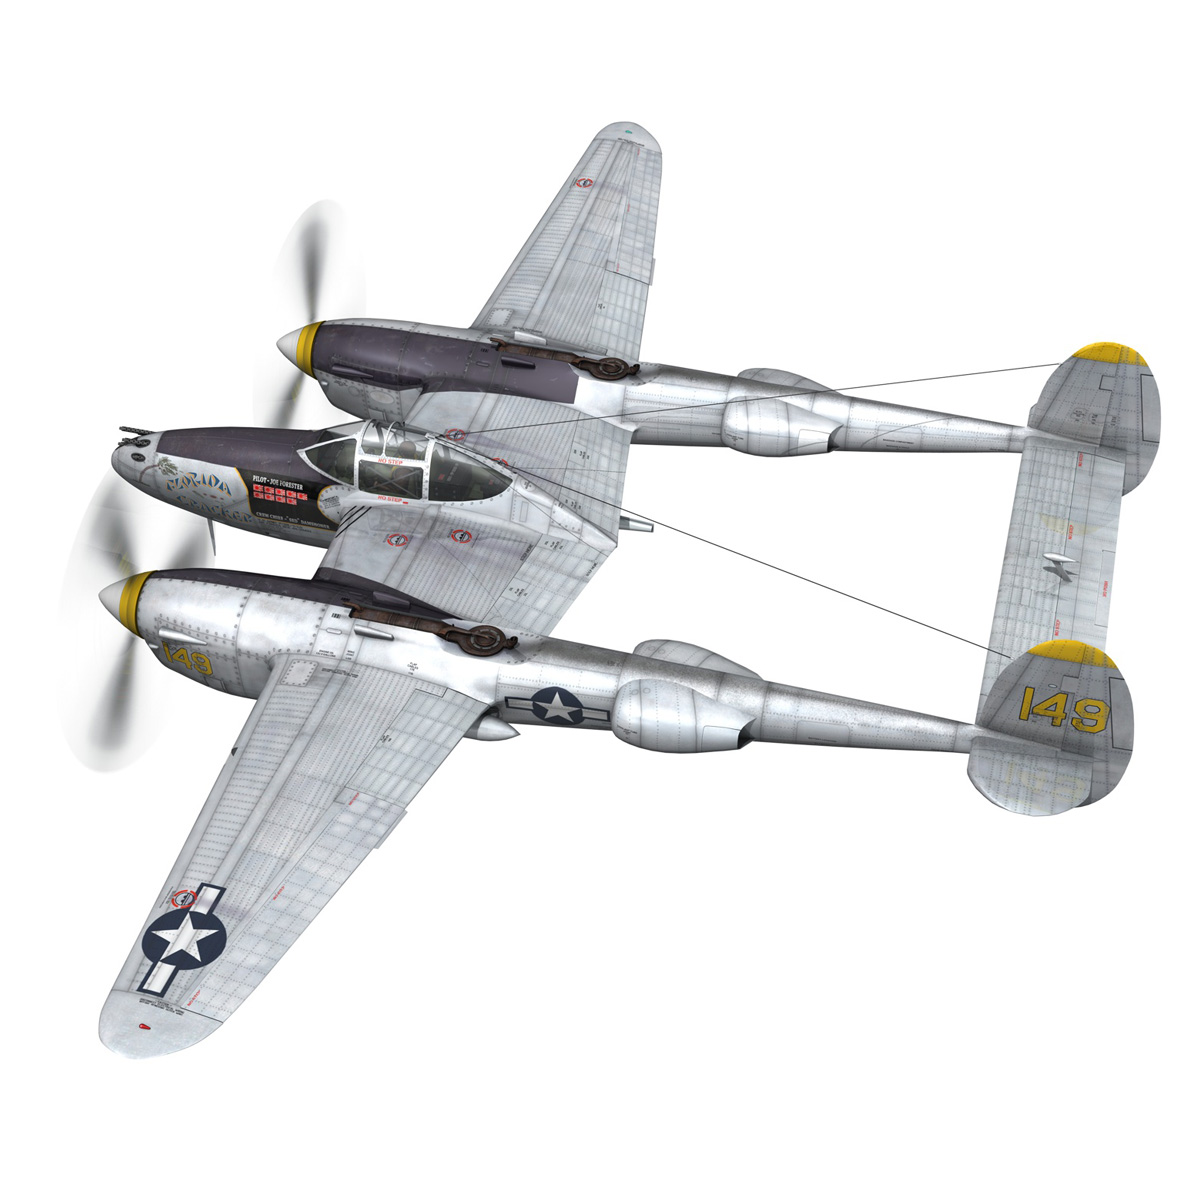 lockheed p-38 lightning – florida cracker 3d model fbx c4d lwo obj 279417